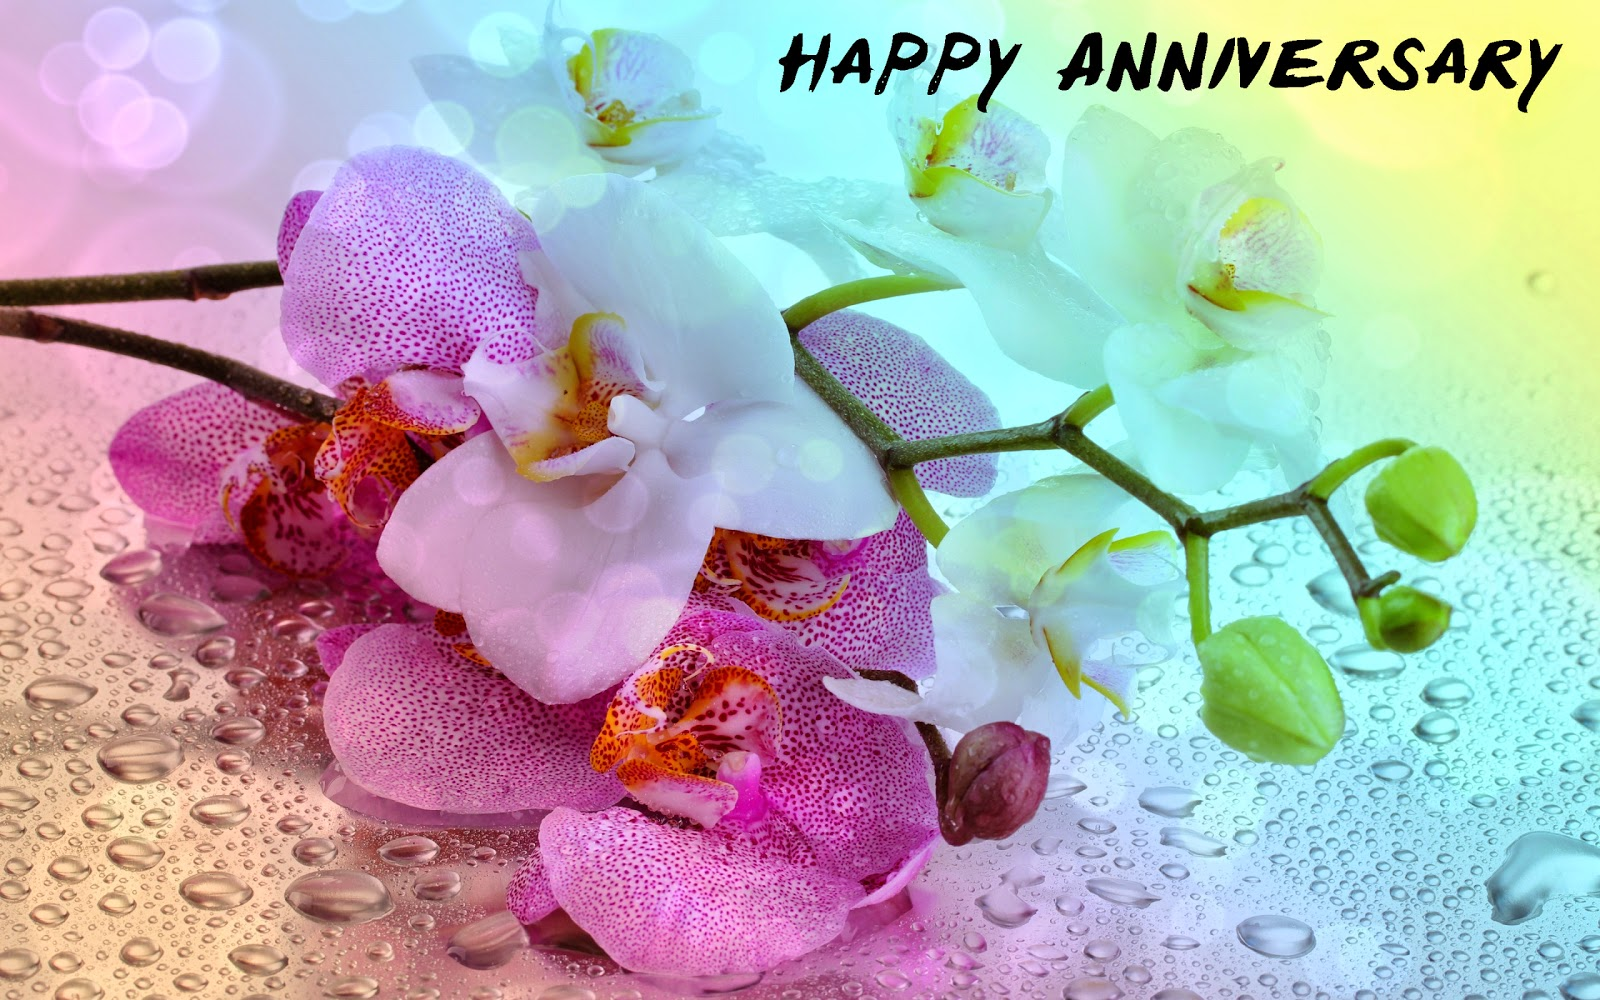 20 Best Happy Anniversary Images Pictures And Photos